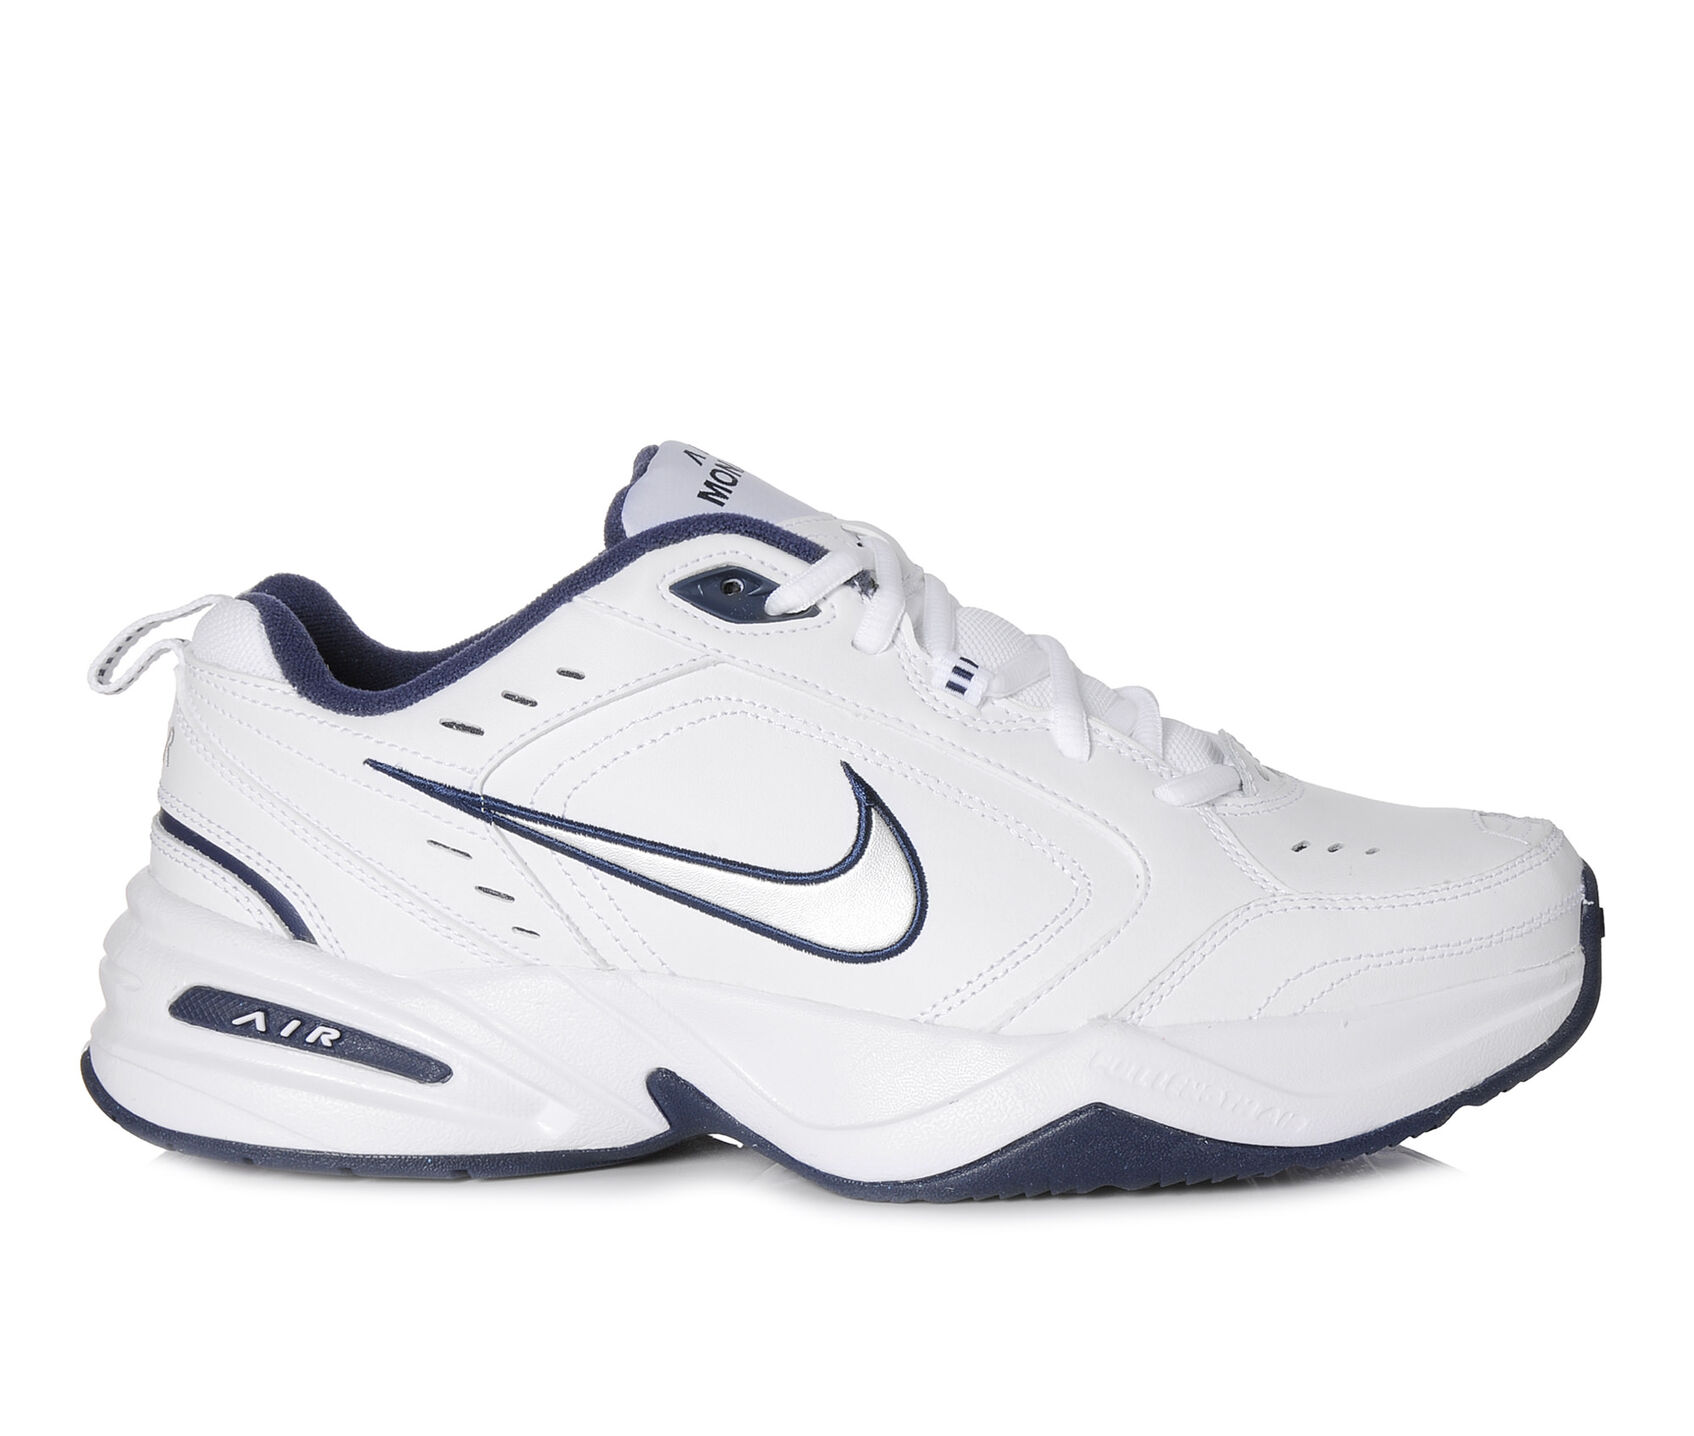 f1c211680a88 Nike Air Monarch Trainers Mens Boots